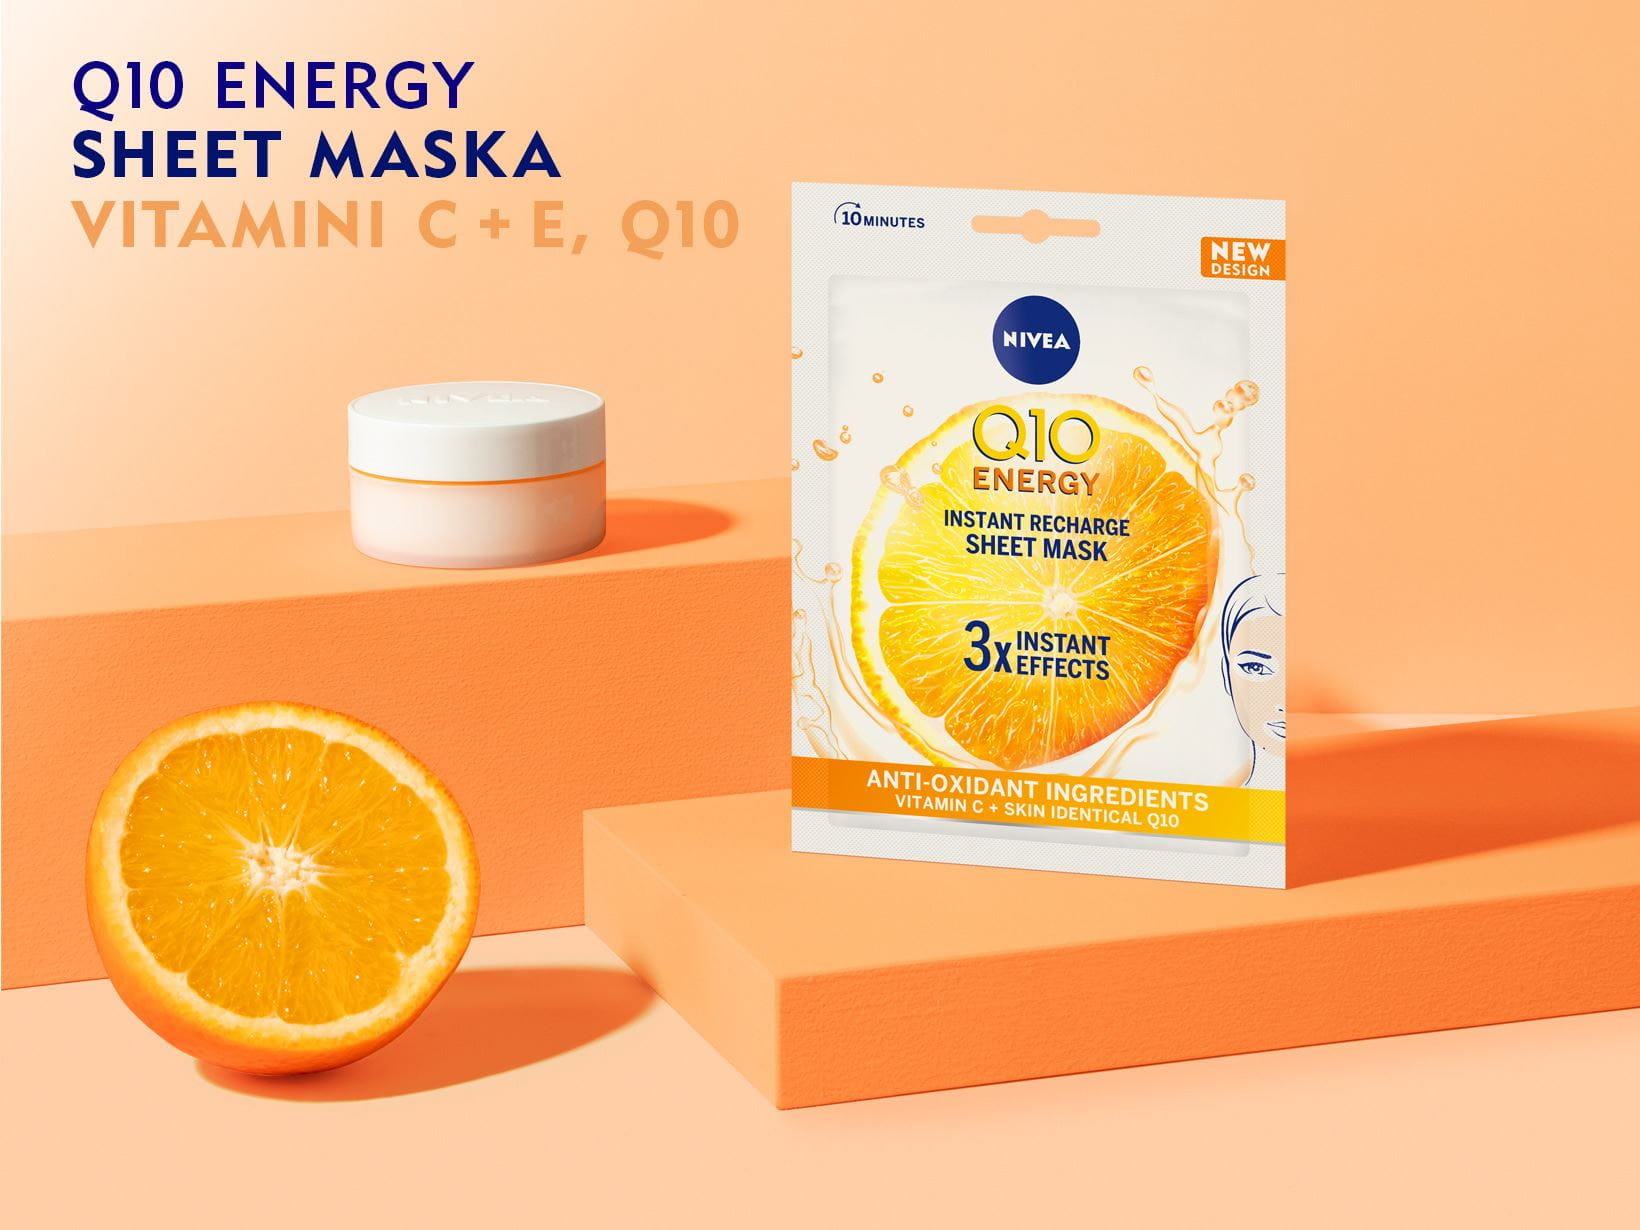 Q10 Energy Instant Recharge Sheet Mask